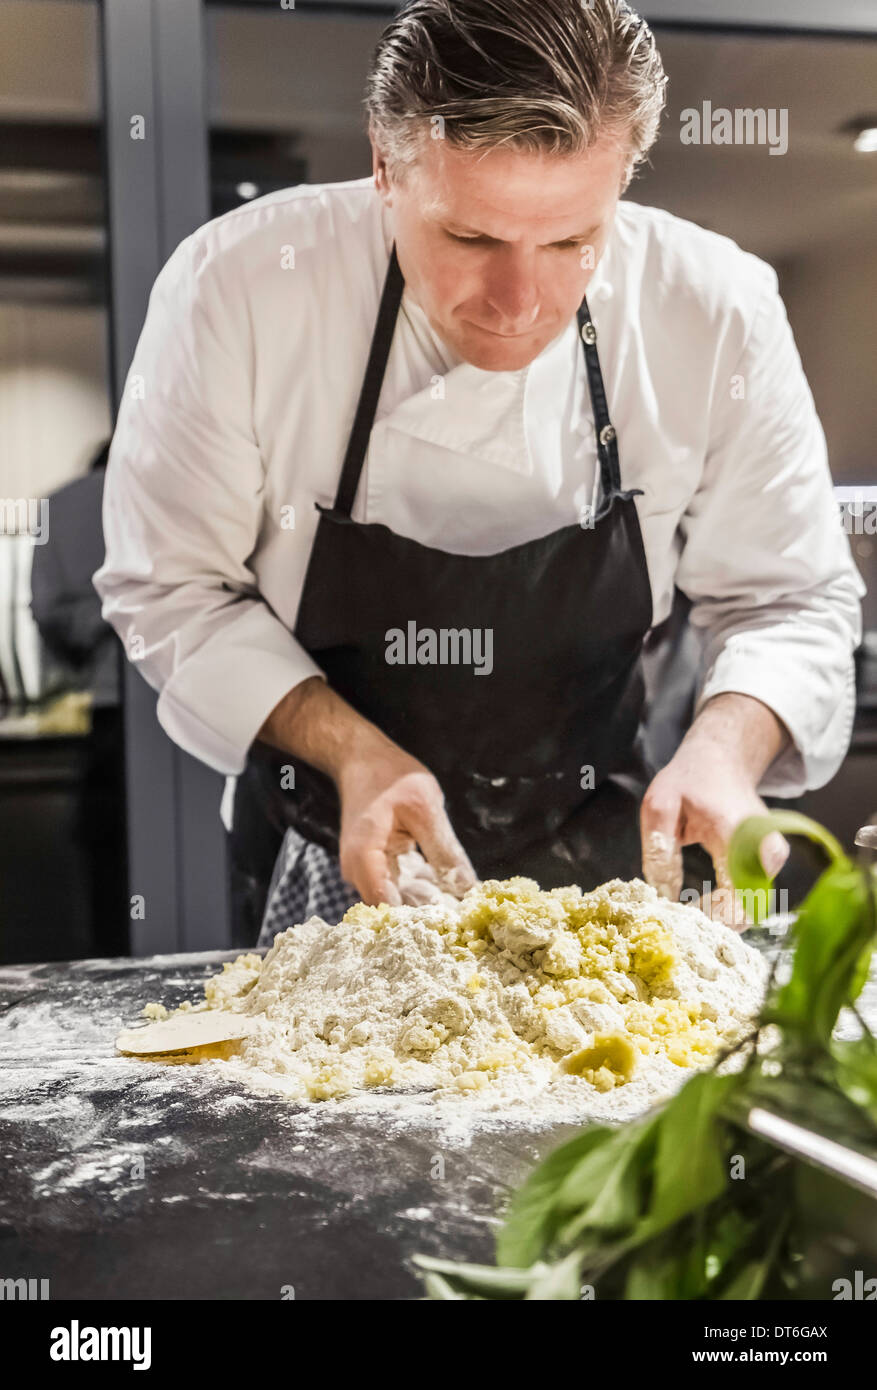 Chef mixing gnocchi dough in commercial kitchen - Stock Image